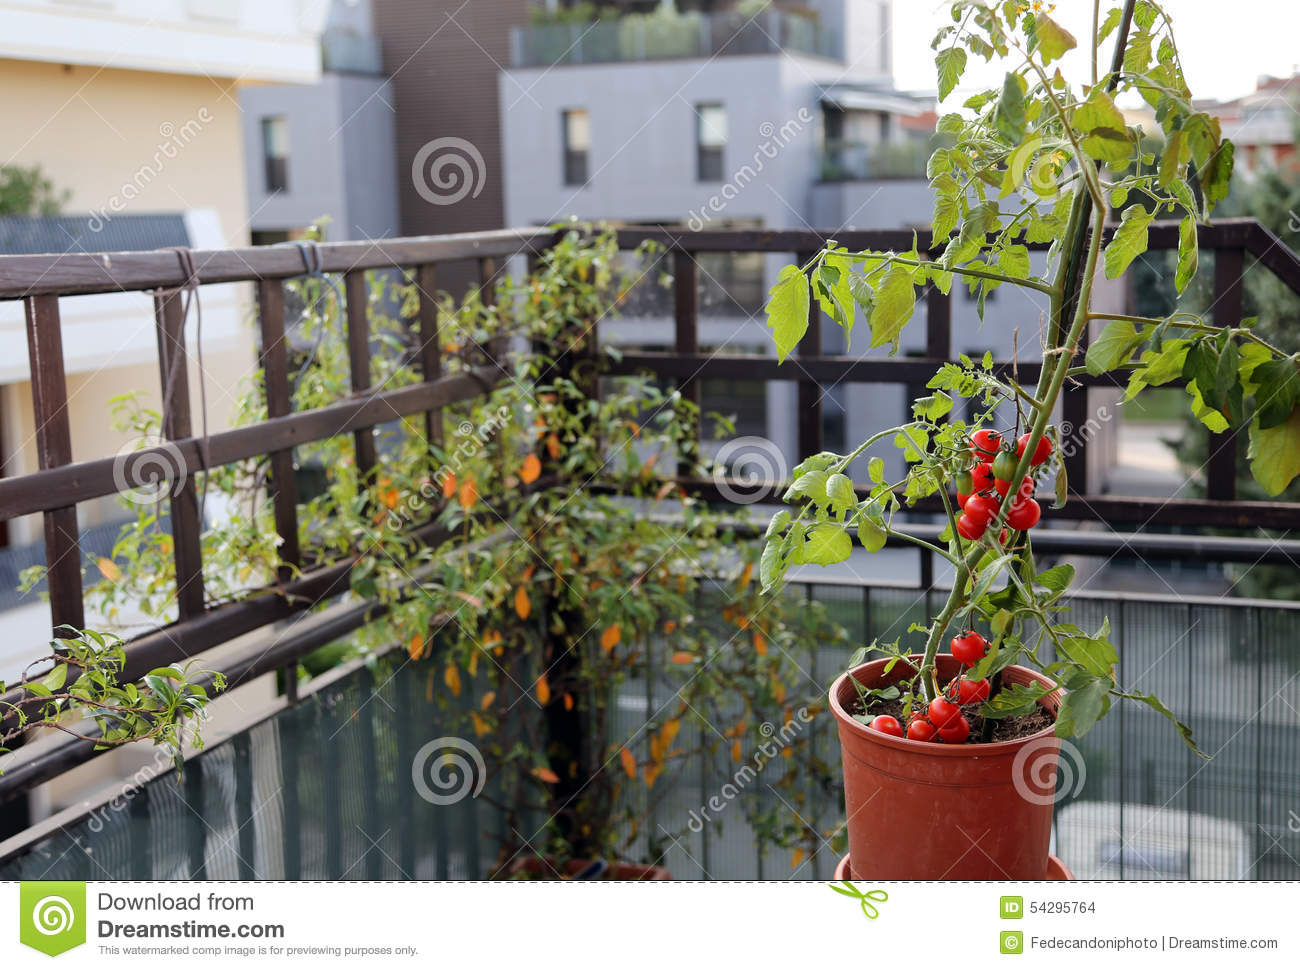 plante de tomate dans le pot sur la terrasse d 39 une maison photo stock image 54295764. Black Bedroom Furniture Sets. Home Design Ideas